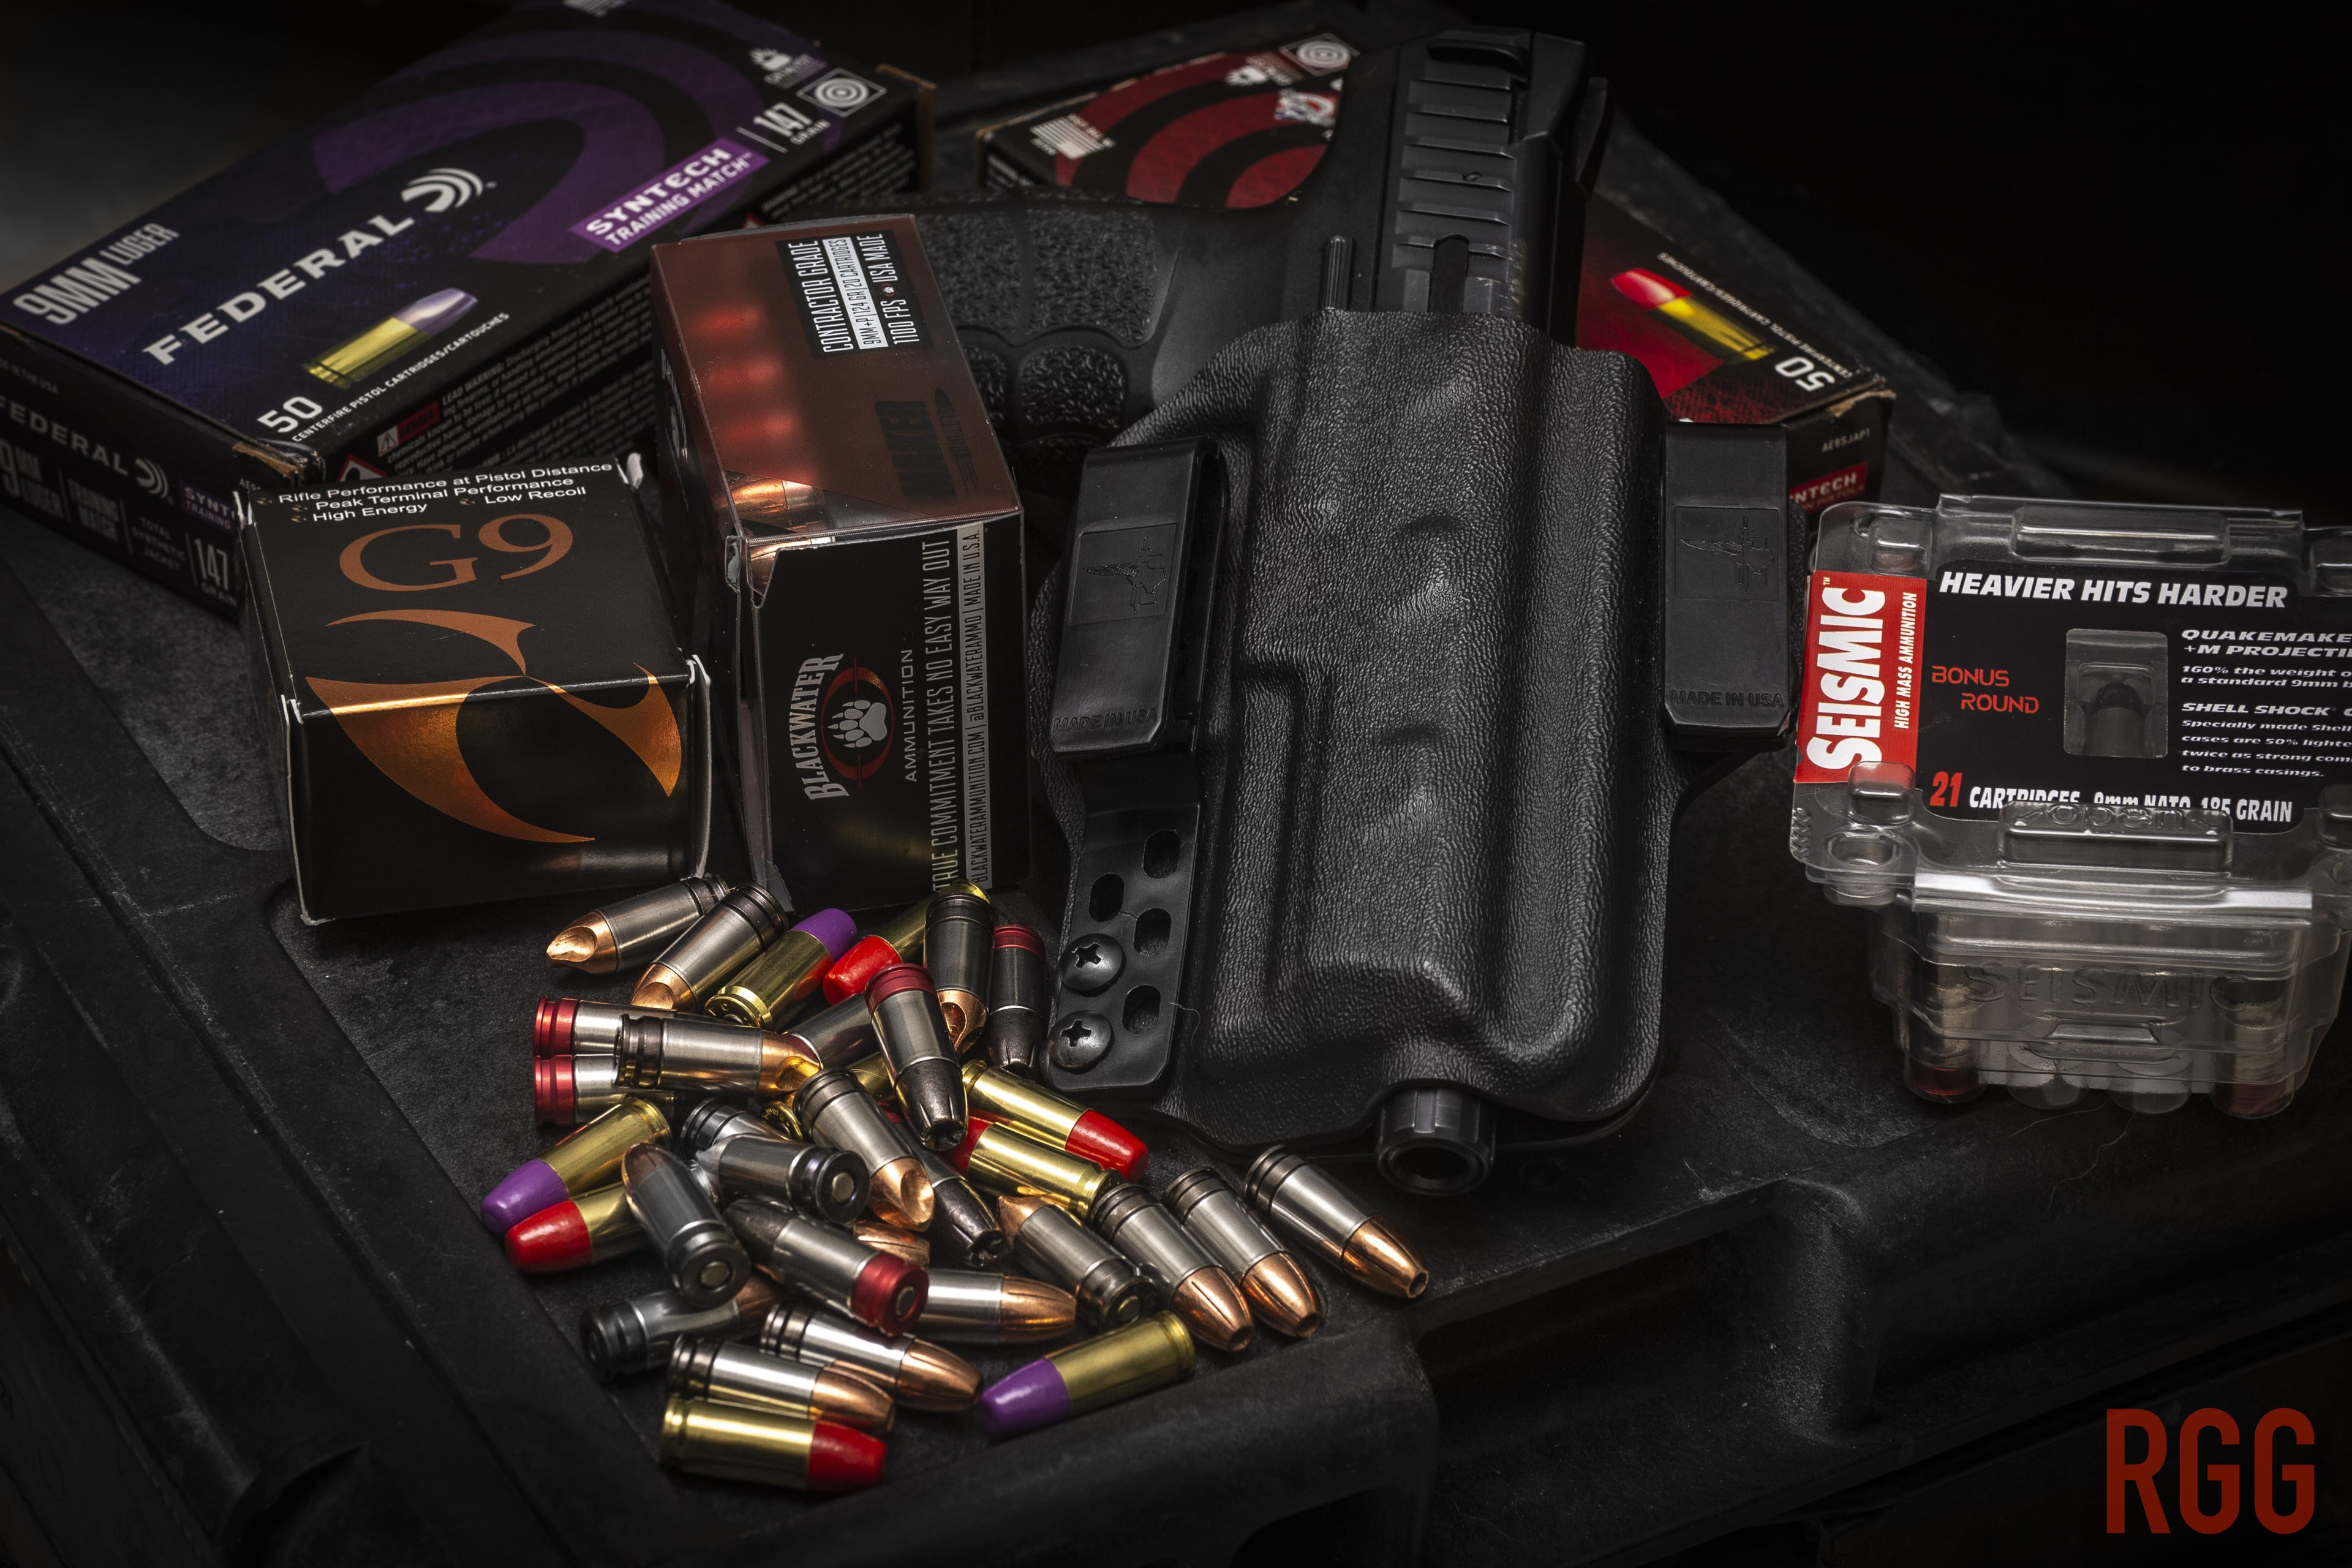 New offerings in 9mm ammunition from G9, Federal, Blackwater, and Seismic.